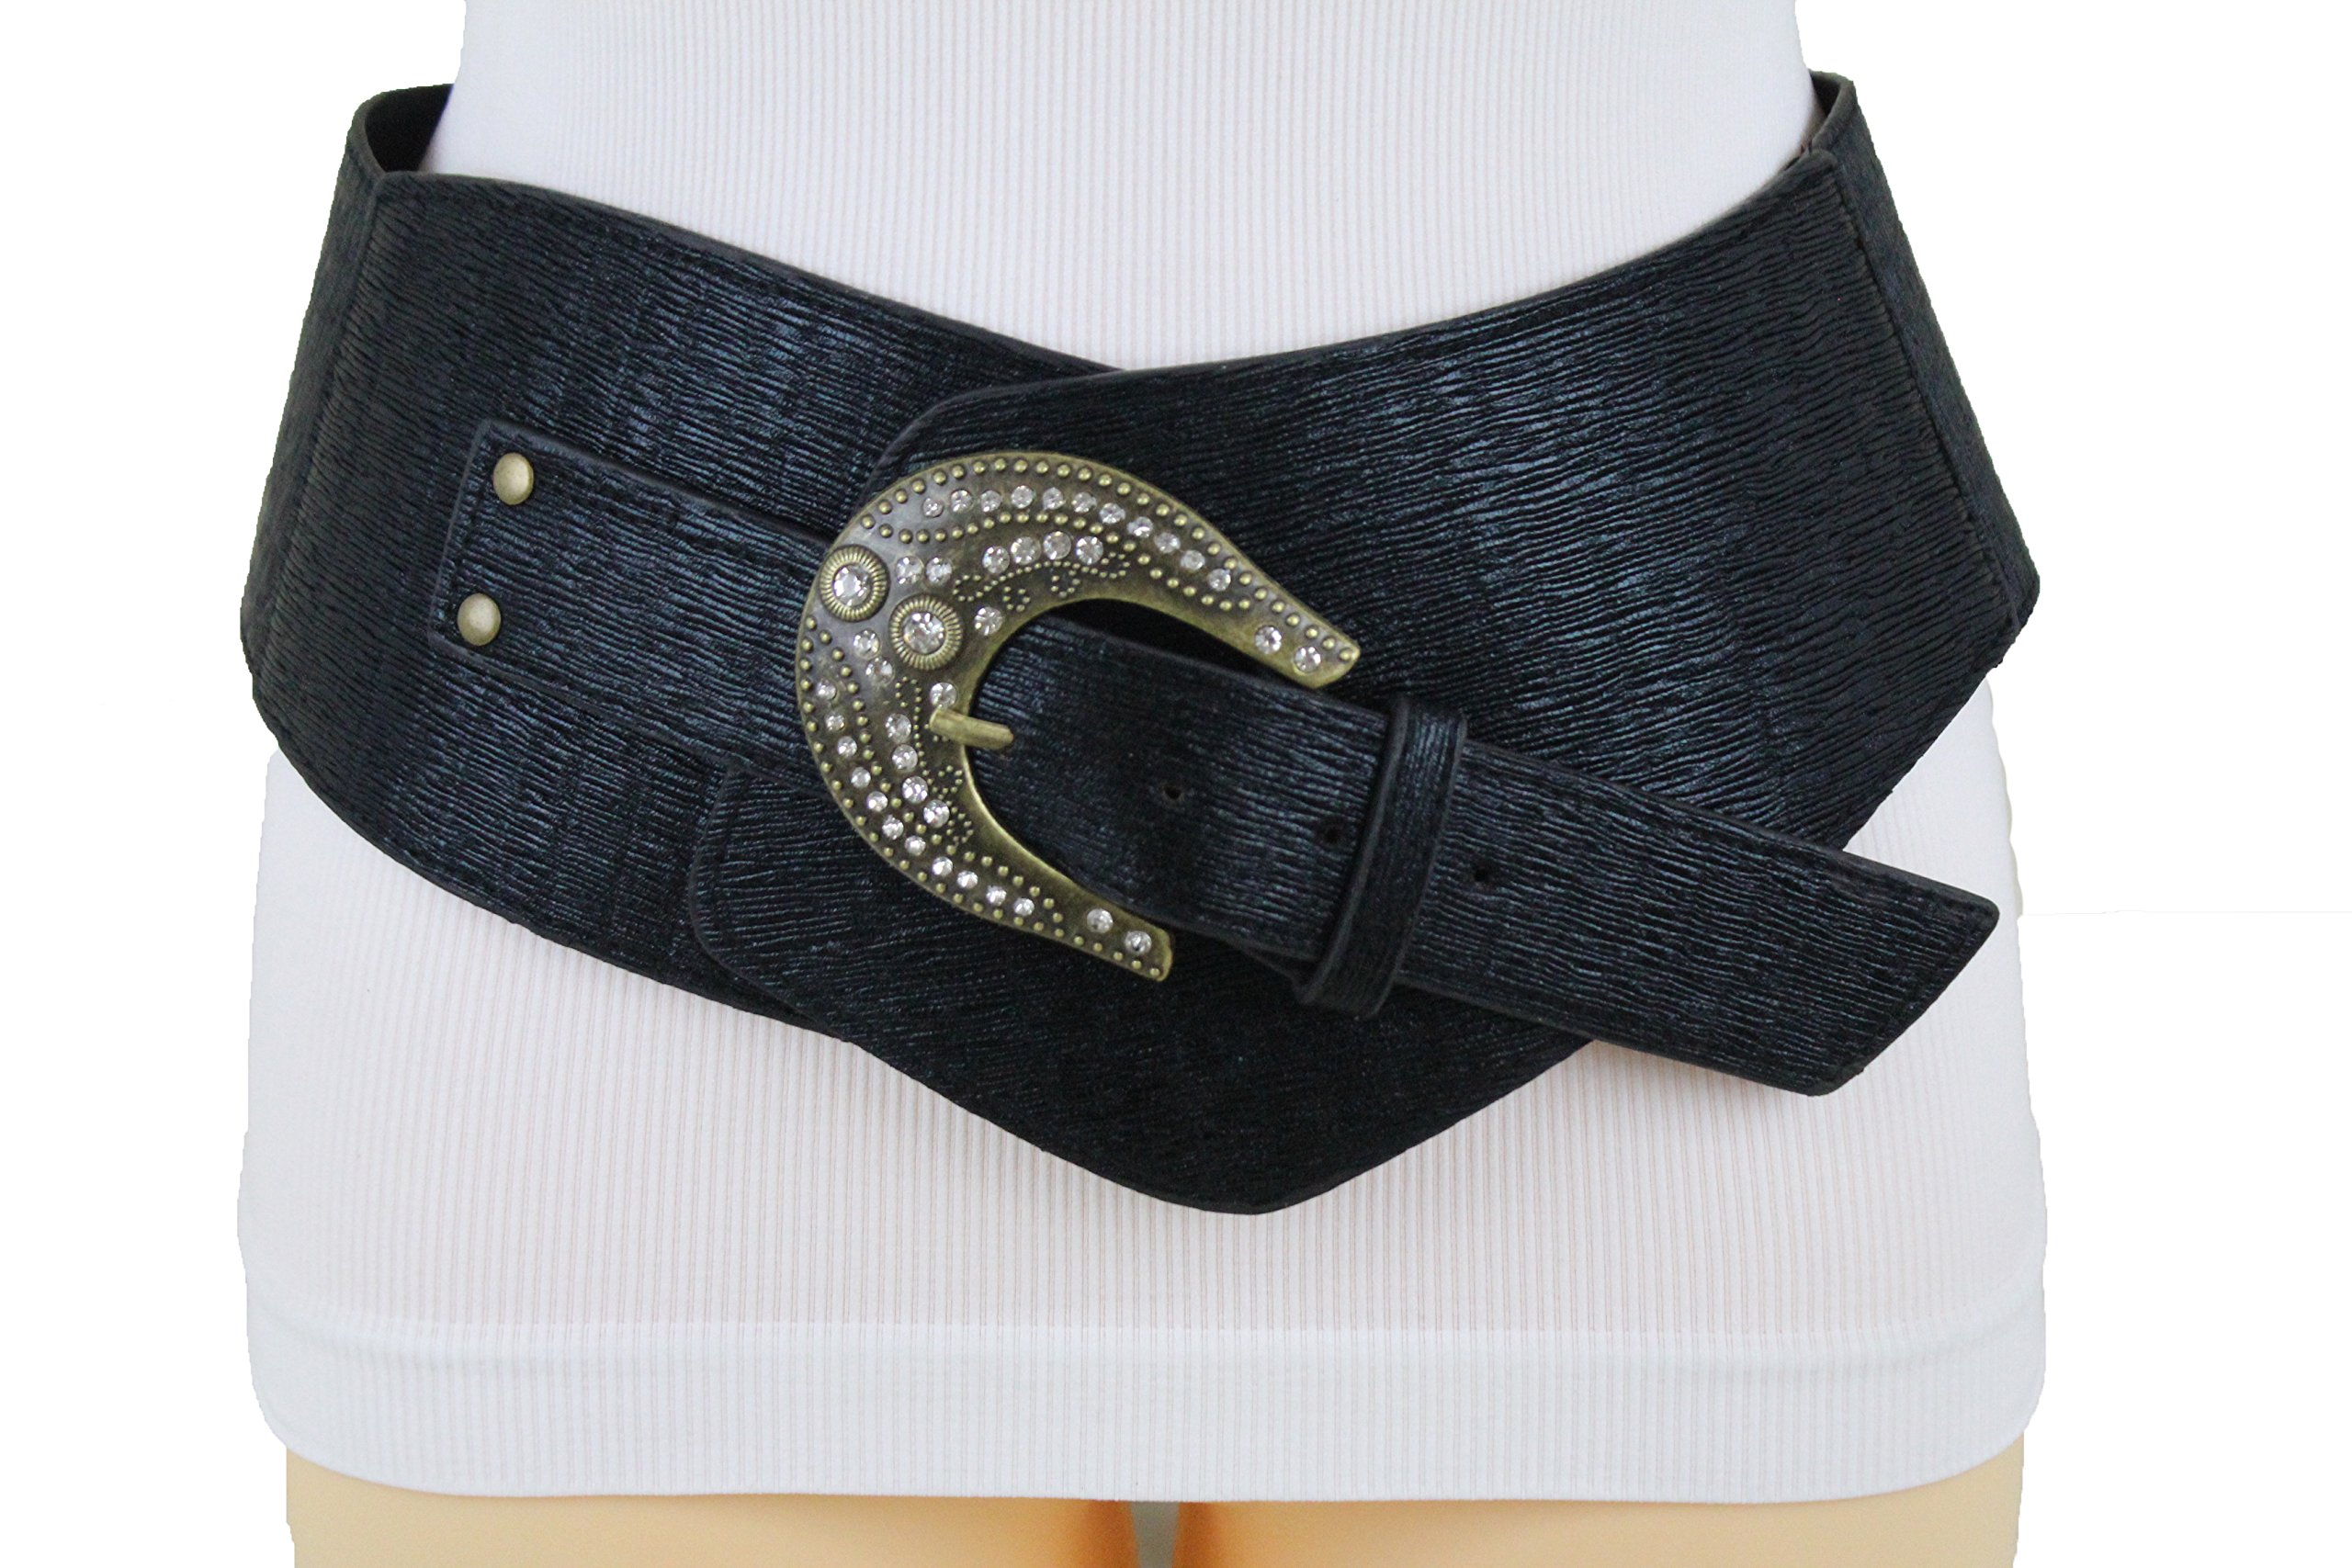 TFJ Women Wide Western Fashion Belt Hip Waist Black Faux Leather Plus Size XL XXL